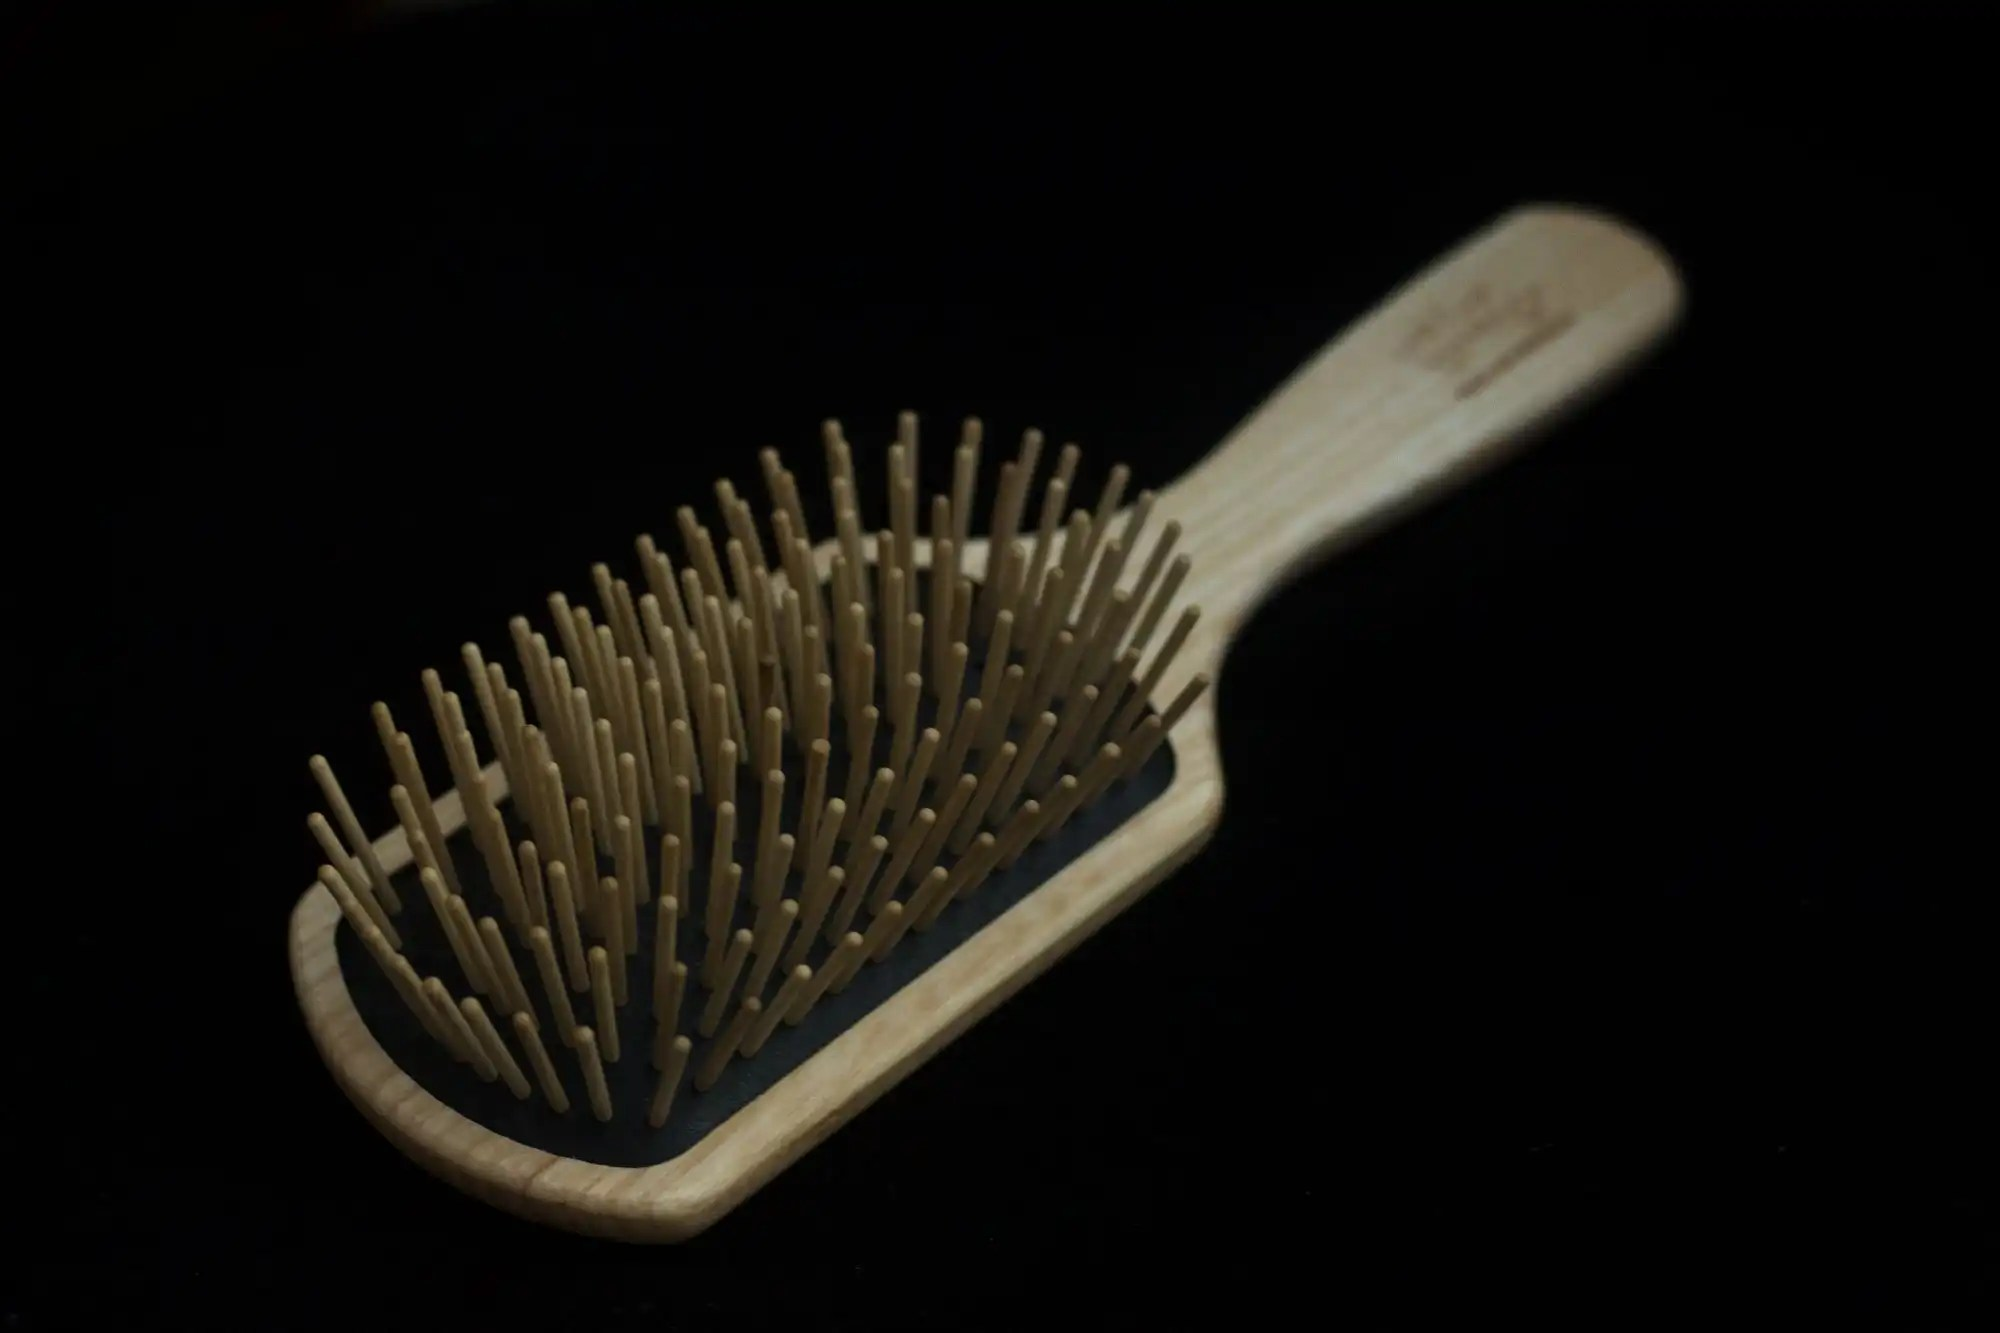 Widu Hair Brush on black background